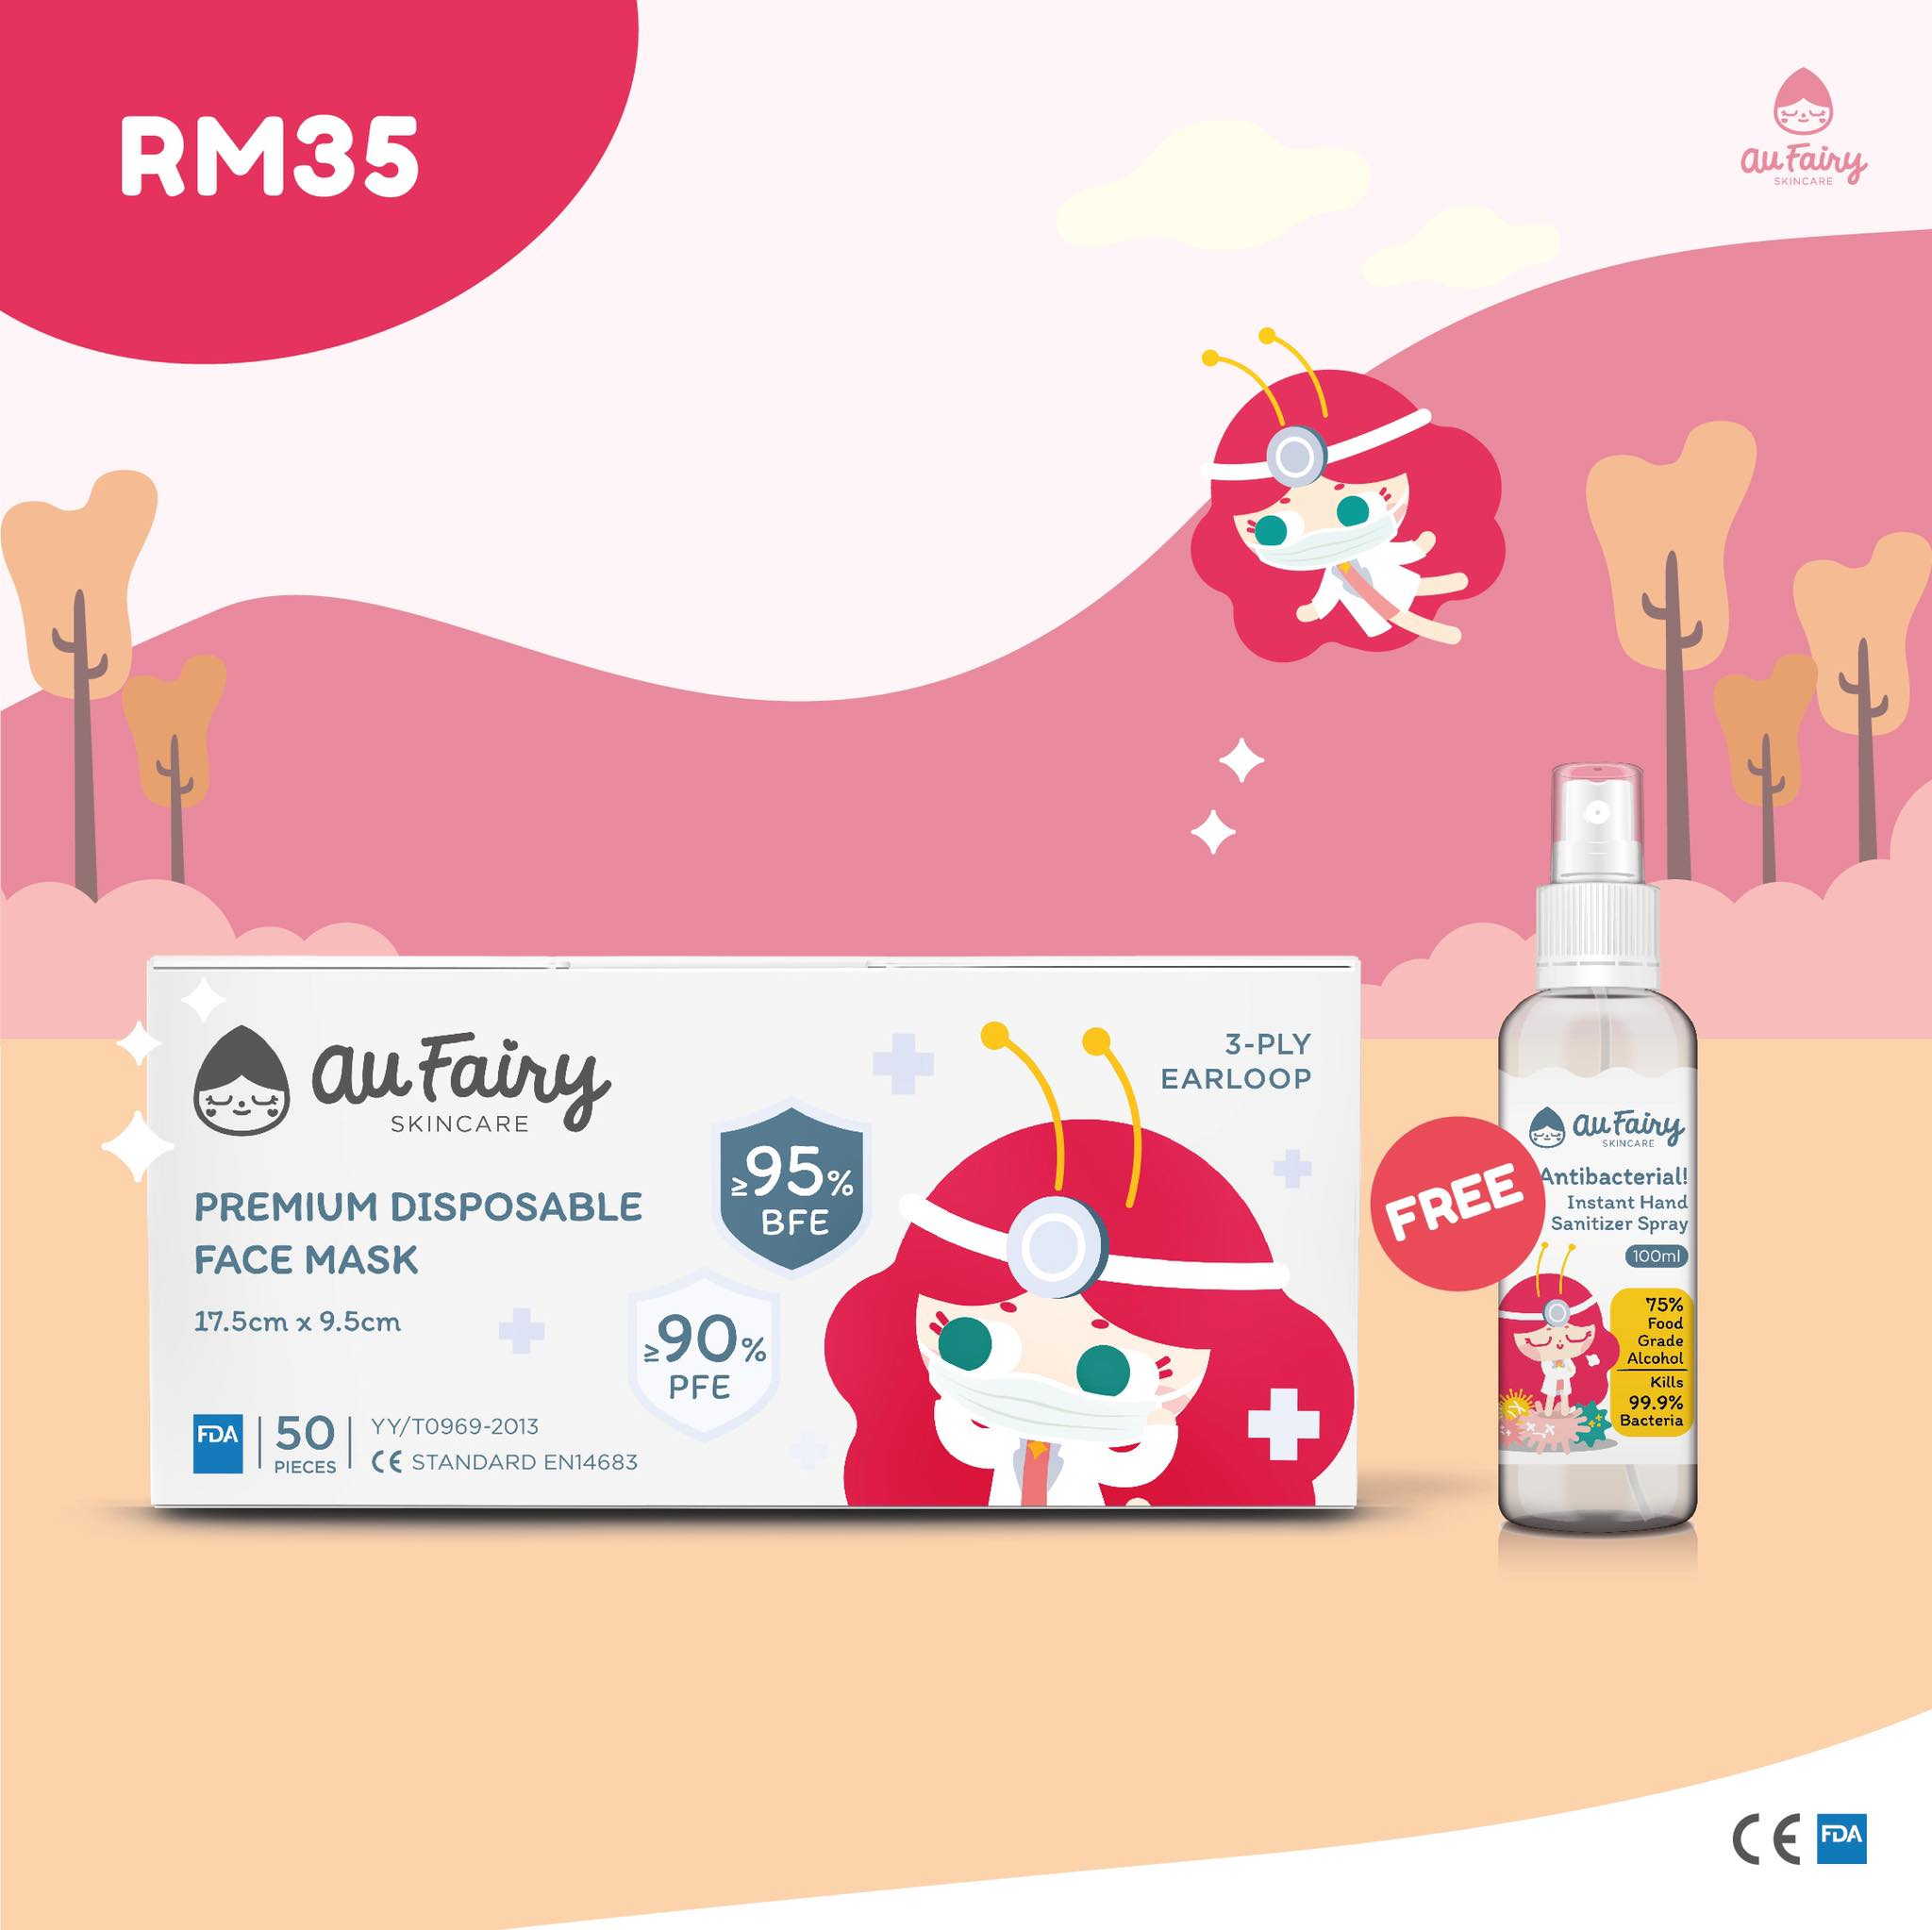 Au Fairy Premium Disposable Face Mask (Adult) FREE 1 Hand Sanitizer Spray 100ml